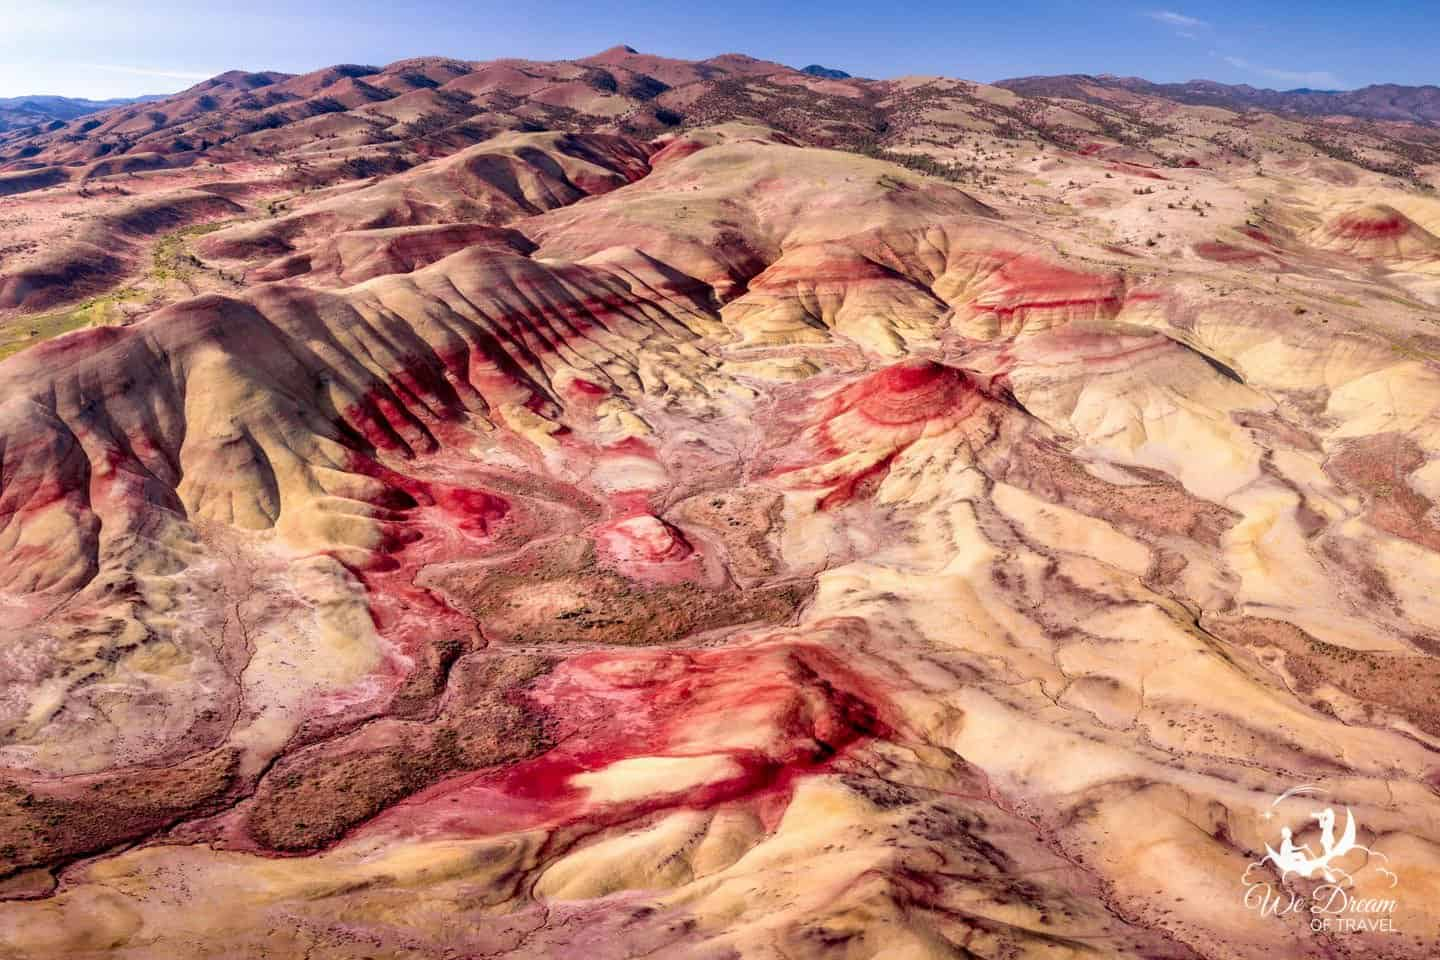 Aerial view of the John Day Fossil Beds National Monument.